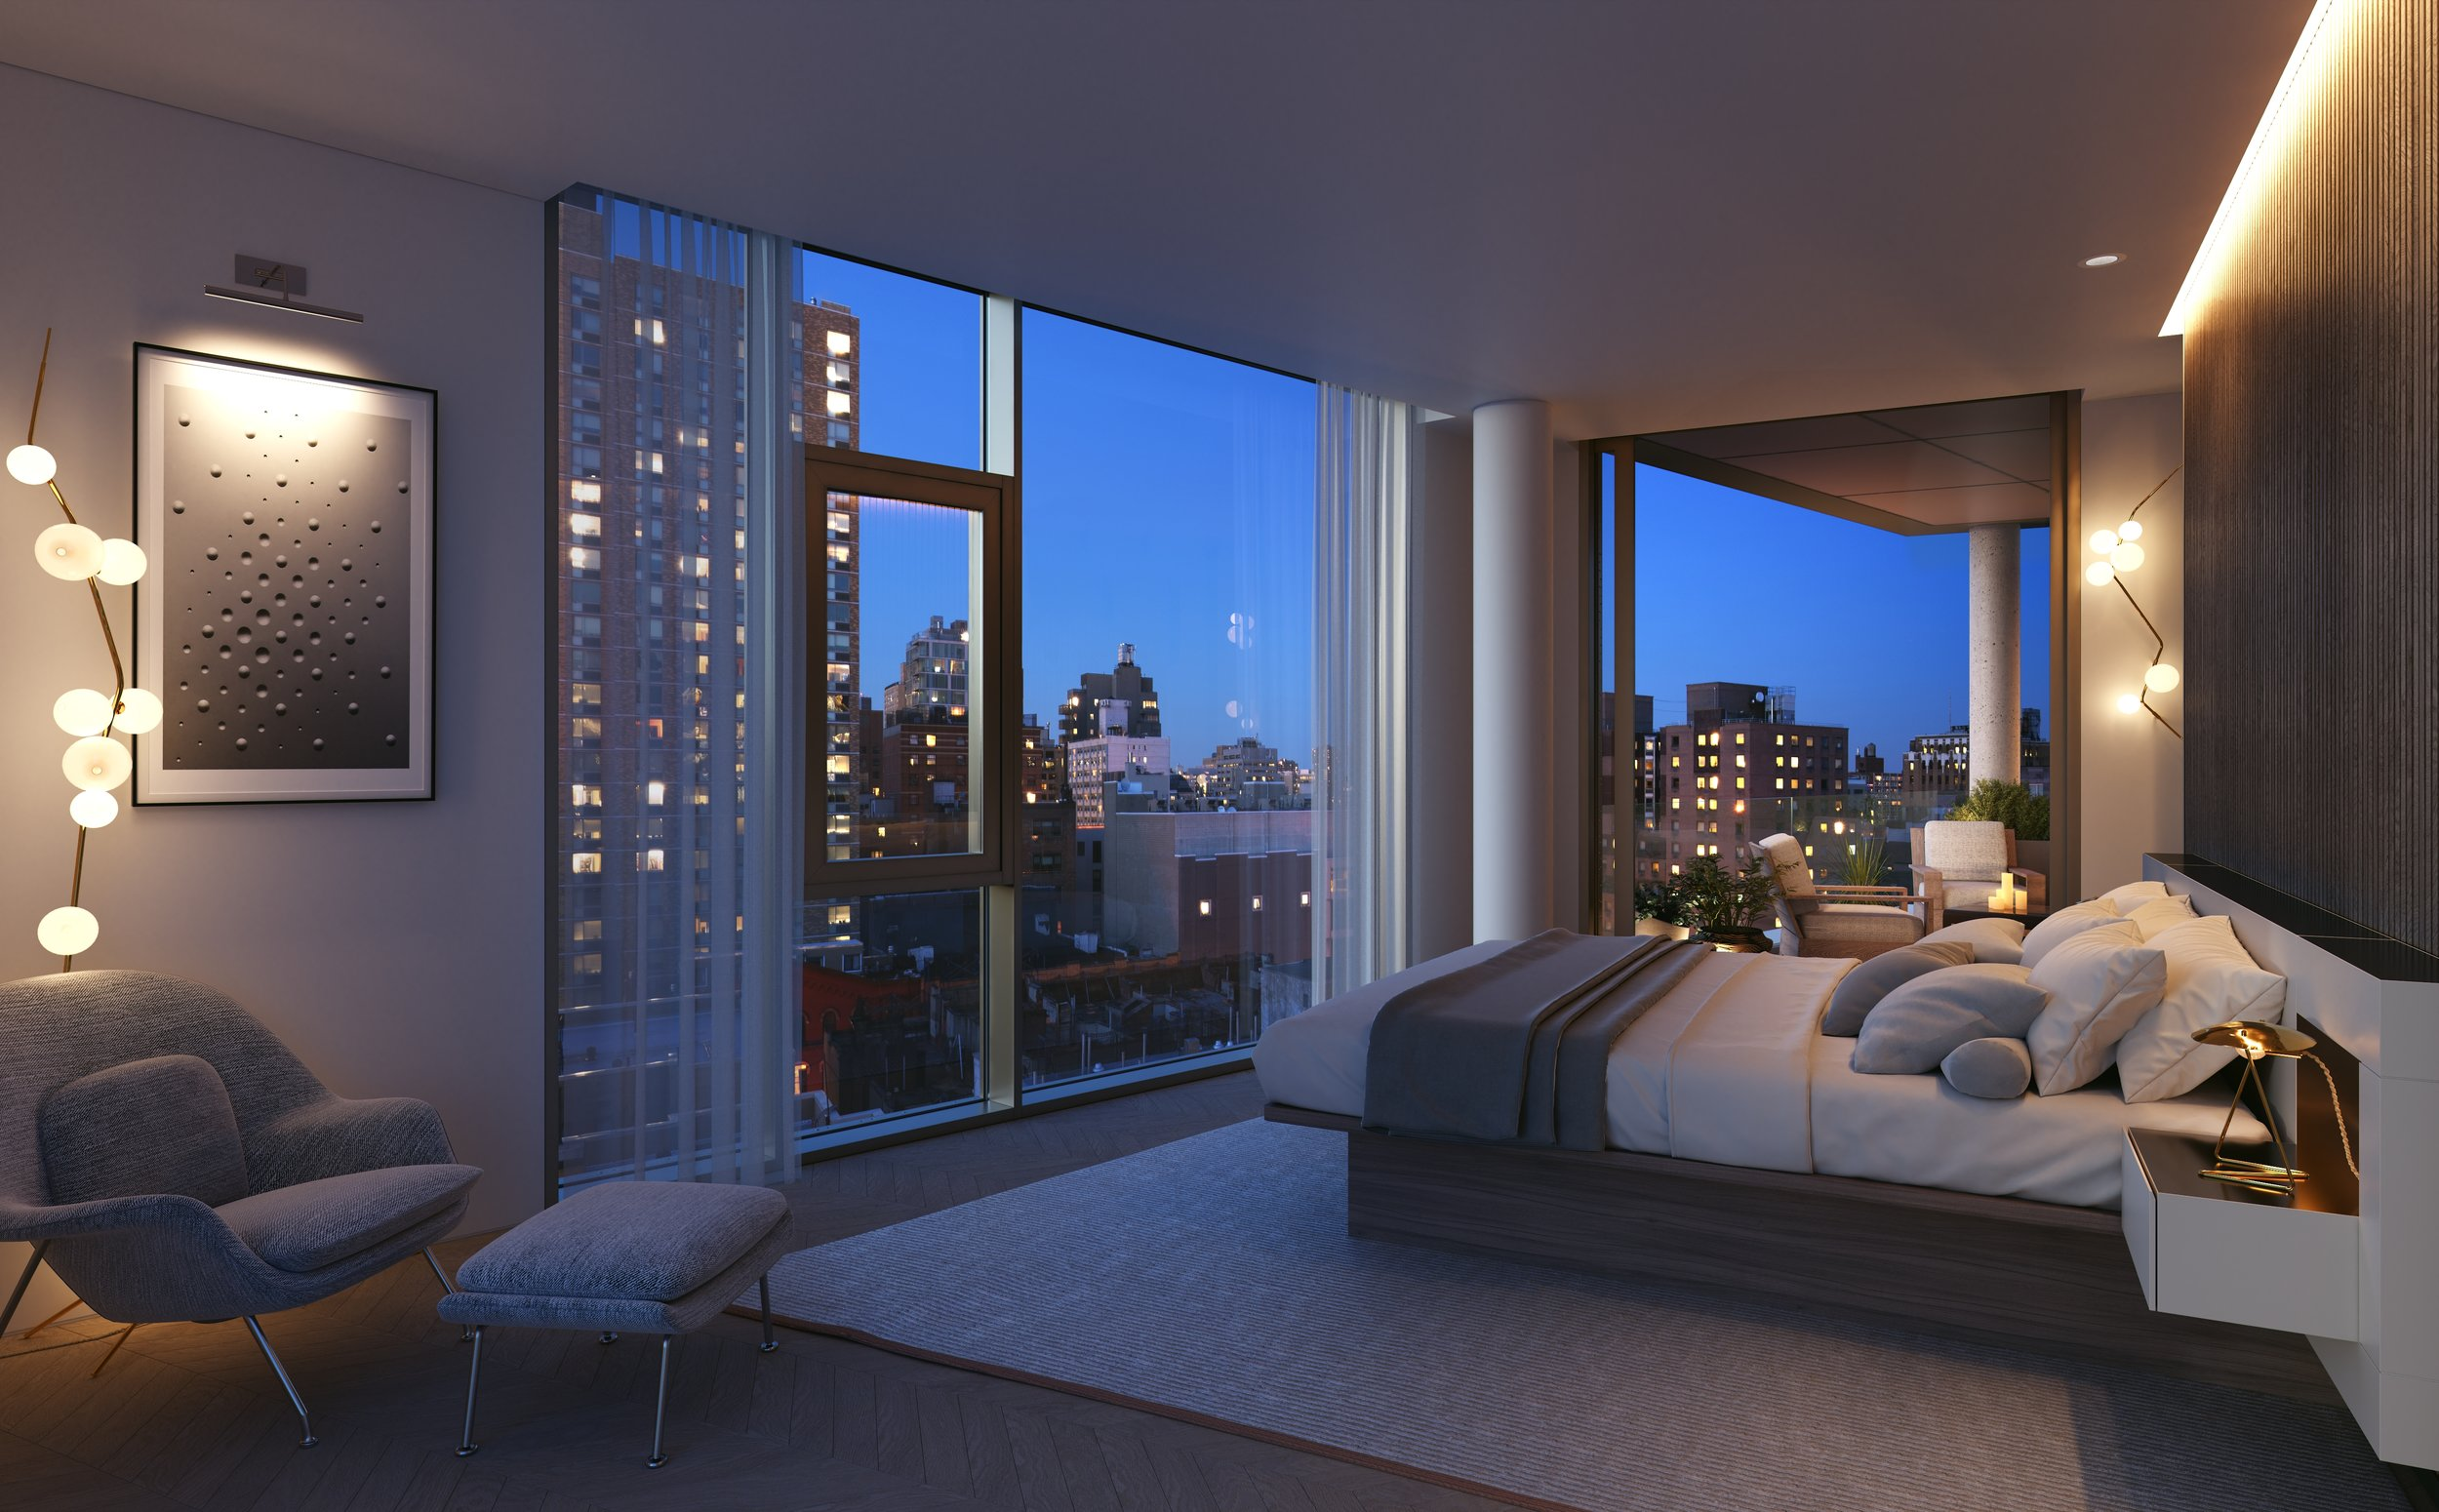 Rendering of master bedroom at 80 east 10th street with MEP-FP engineering services provided by 2L Engineering